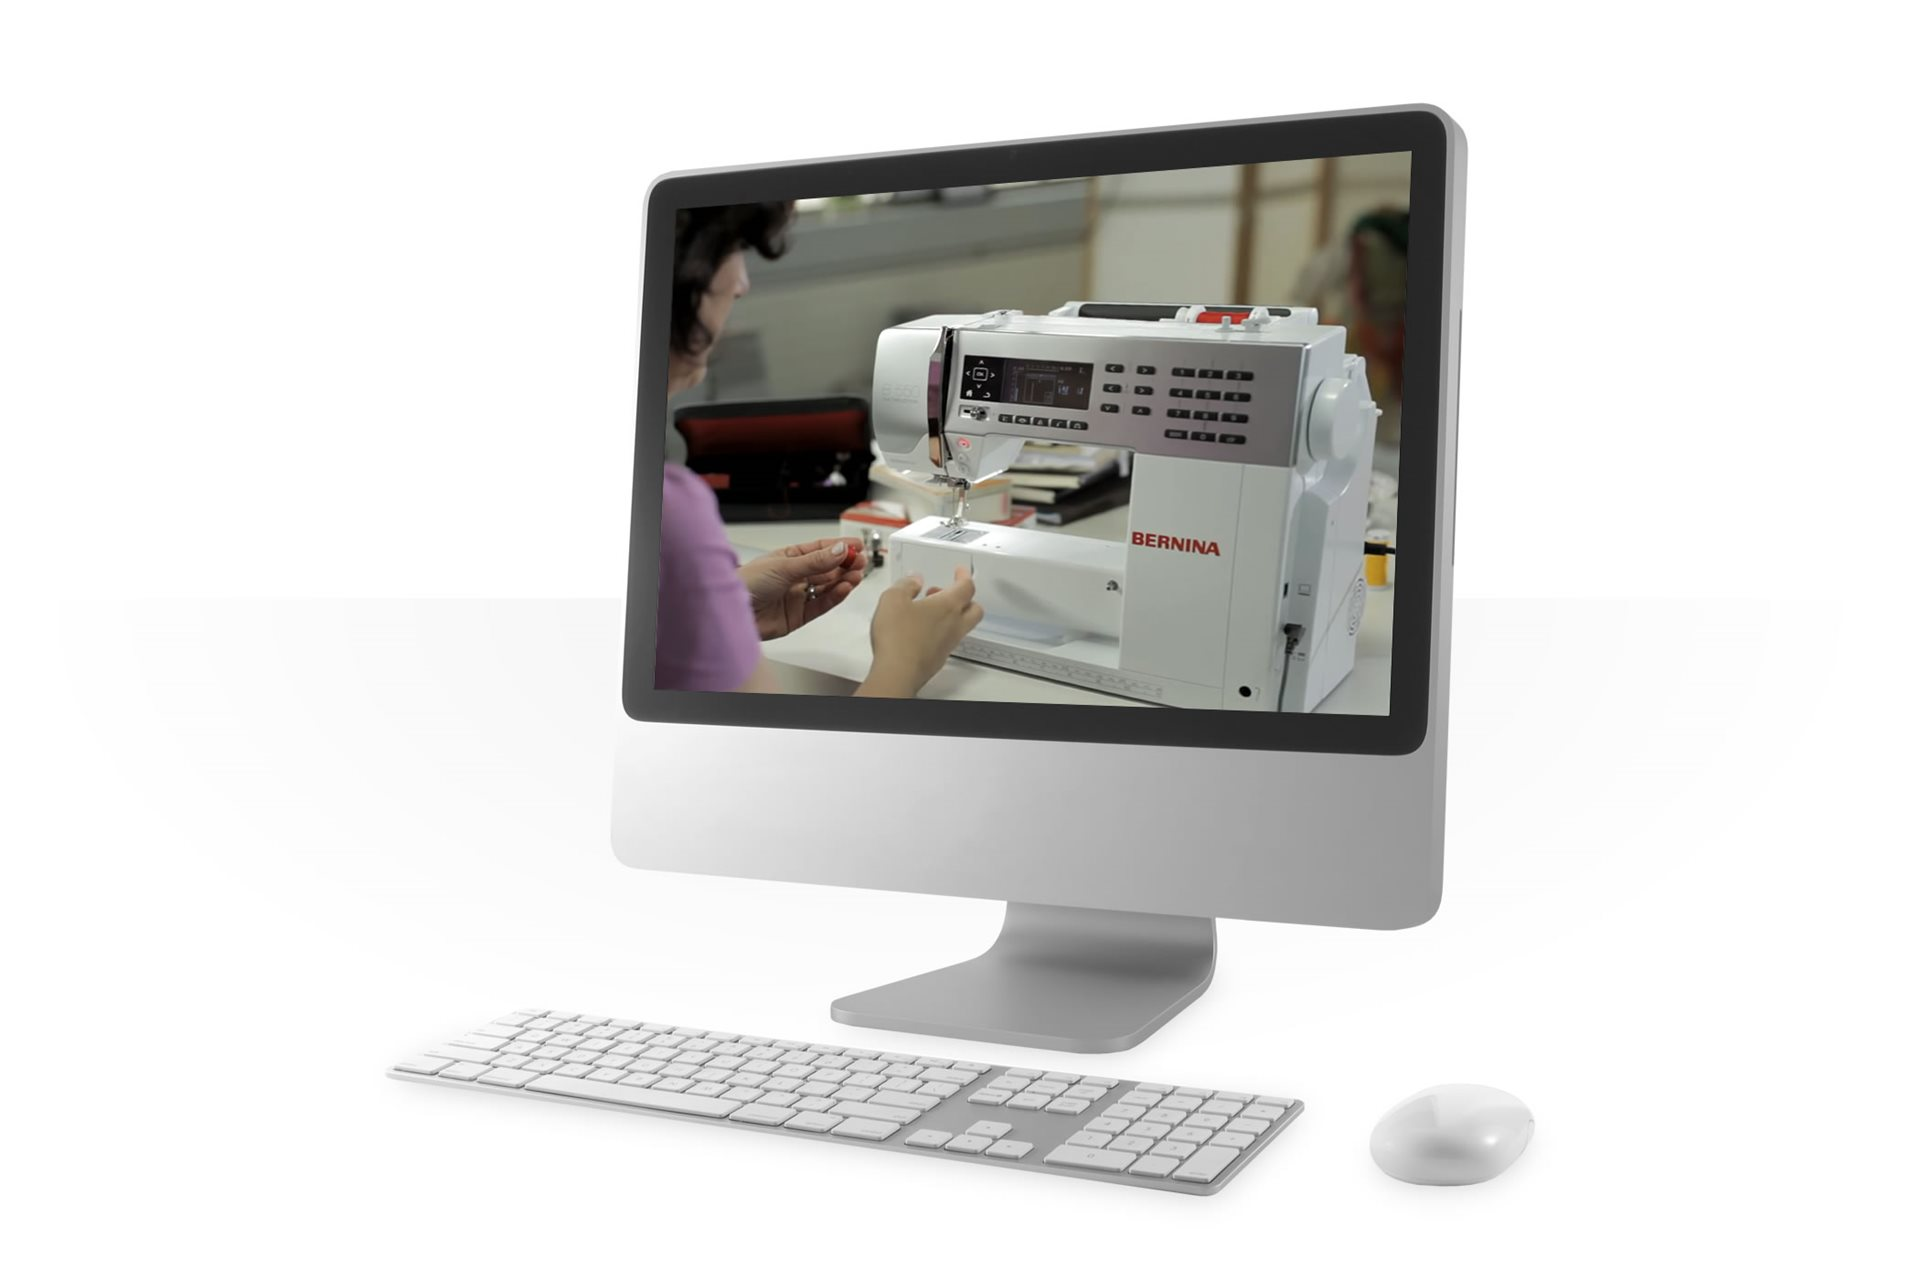 BERNINA Webinars – learn online in the comfort of your own home